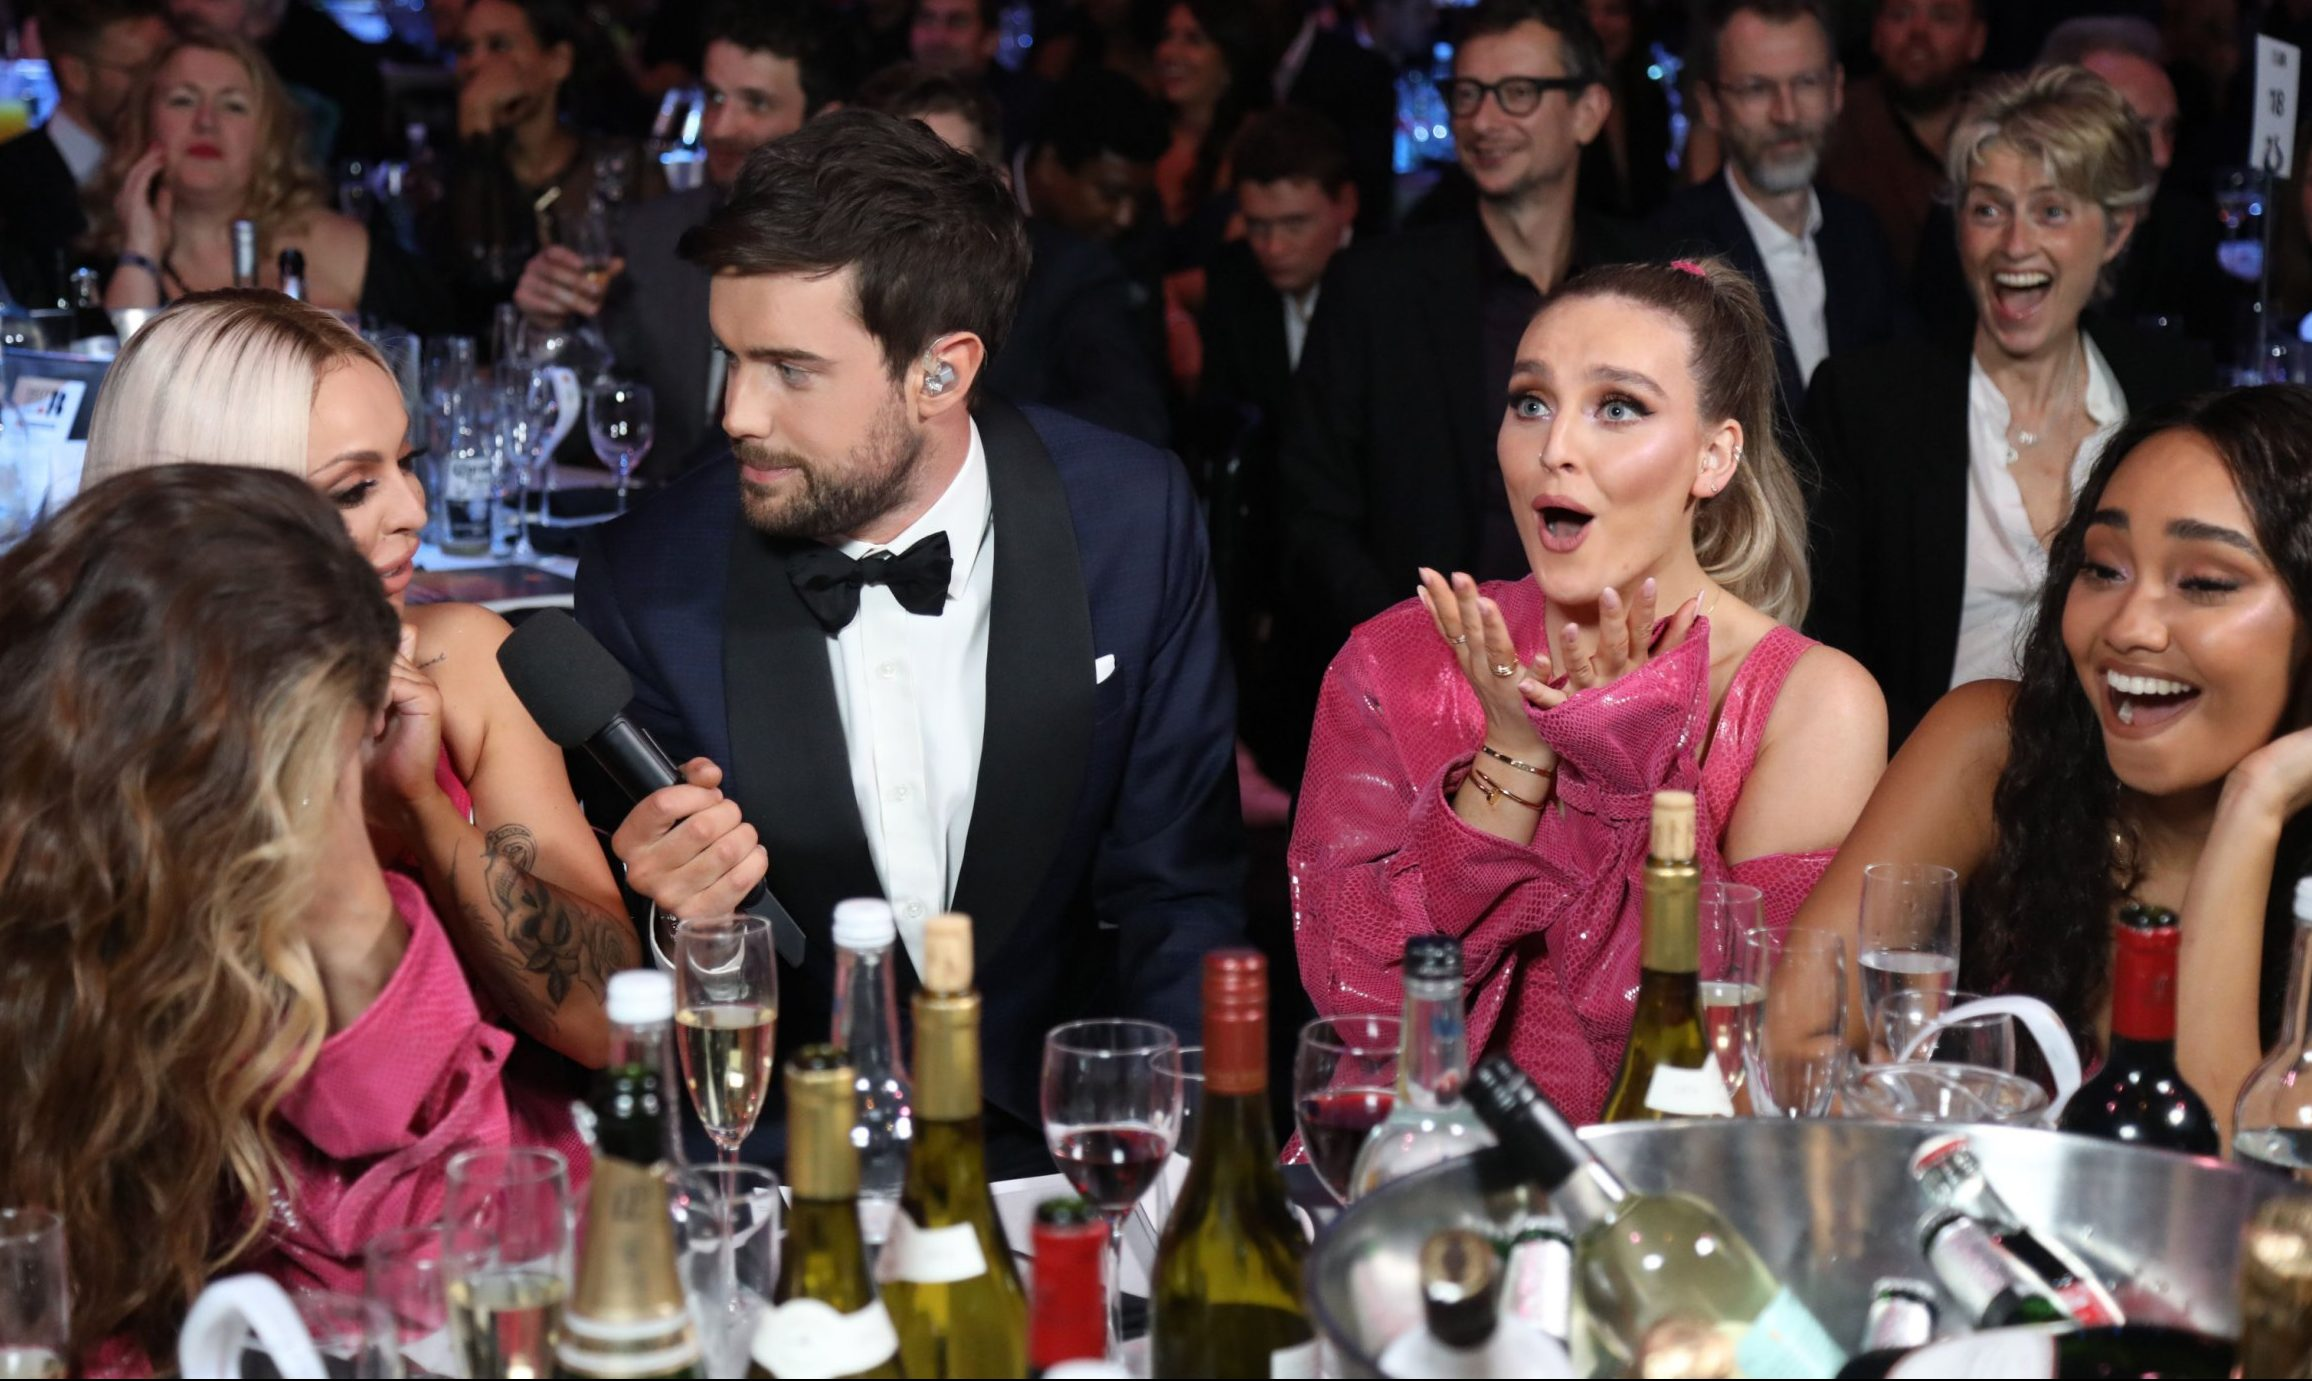 Mandatory Credit: Photo by JM Enternational/REX (10110853jq) Jack Whitehall and Little Mix - Jade Thirlwall, Jesy Nelson, Perrie Edwards and Leigh-Anne Pinnock 39th Brit Awards, Show, The O2 Arena, London, UK - 20 Feb 2019